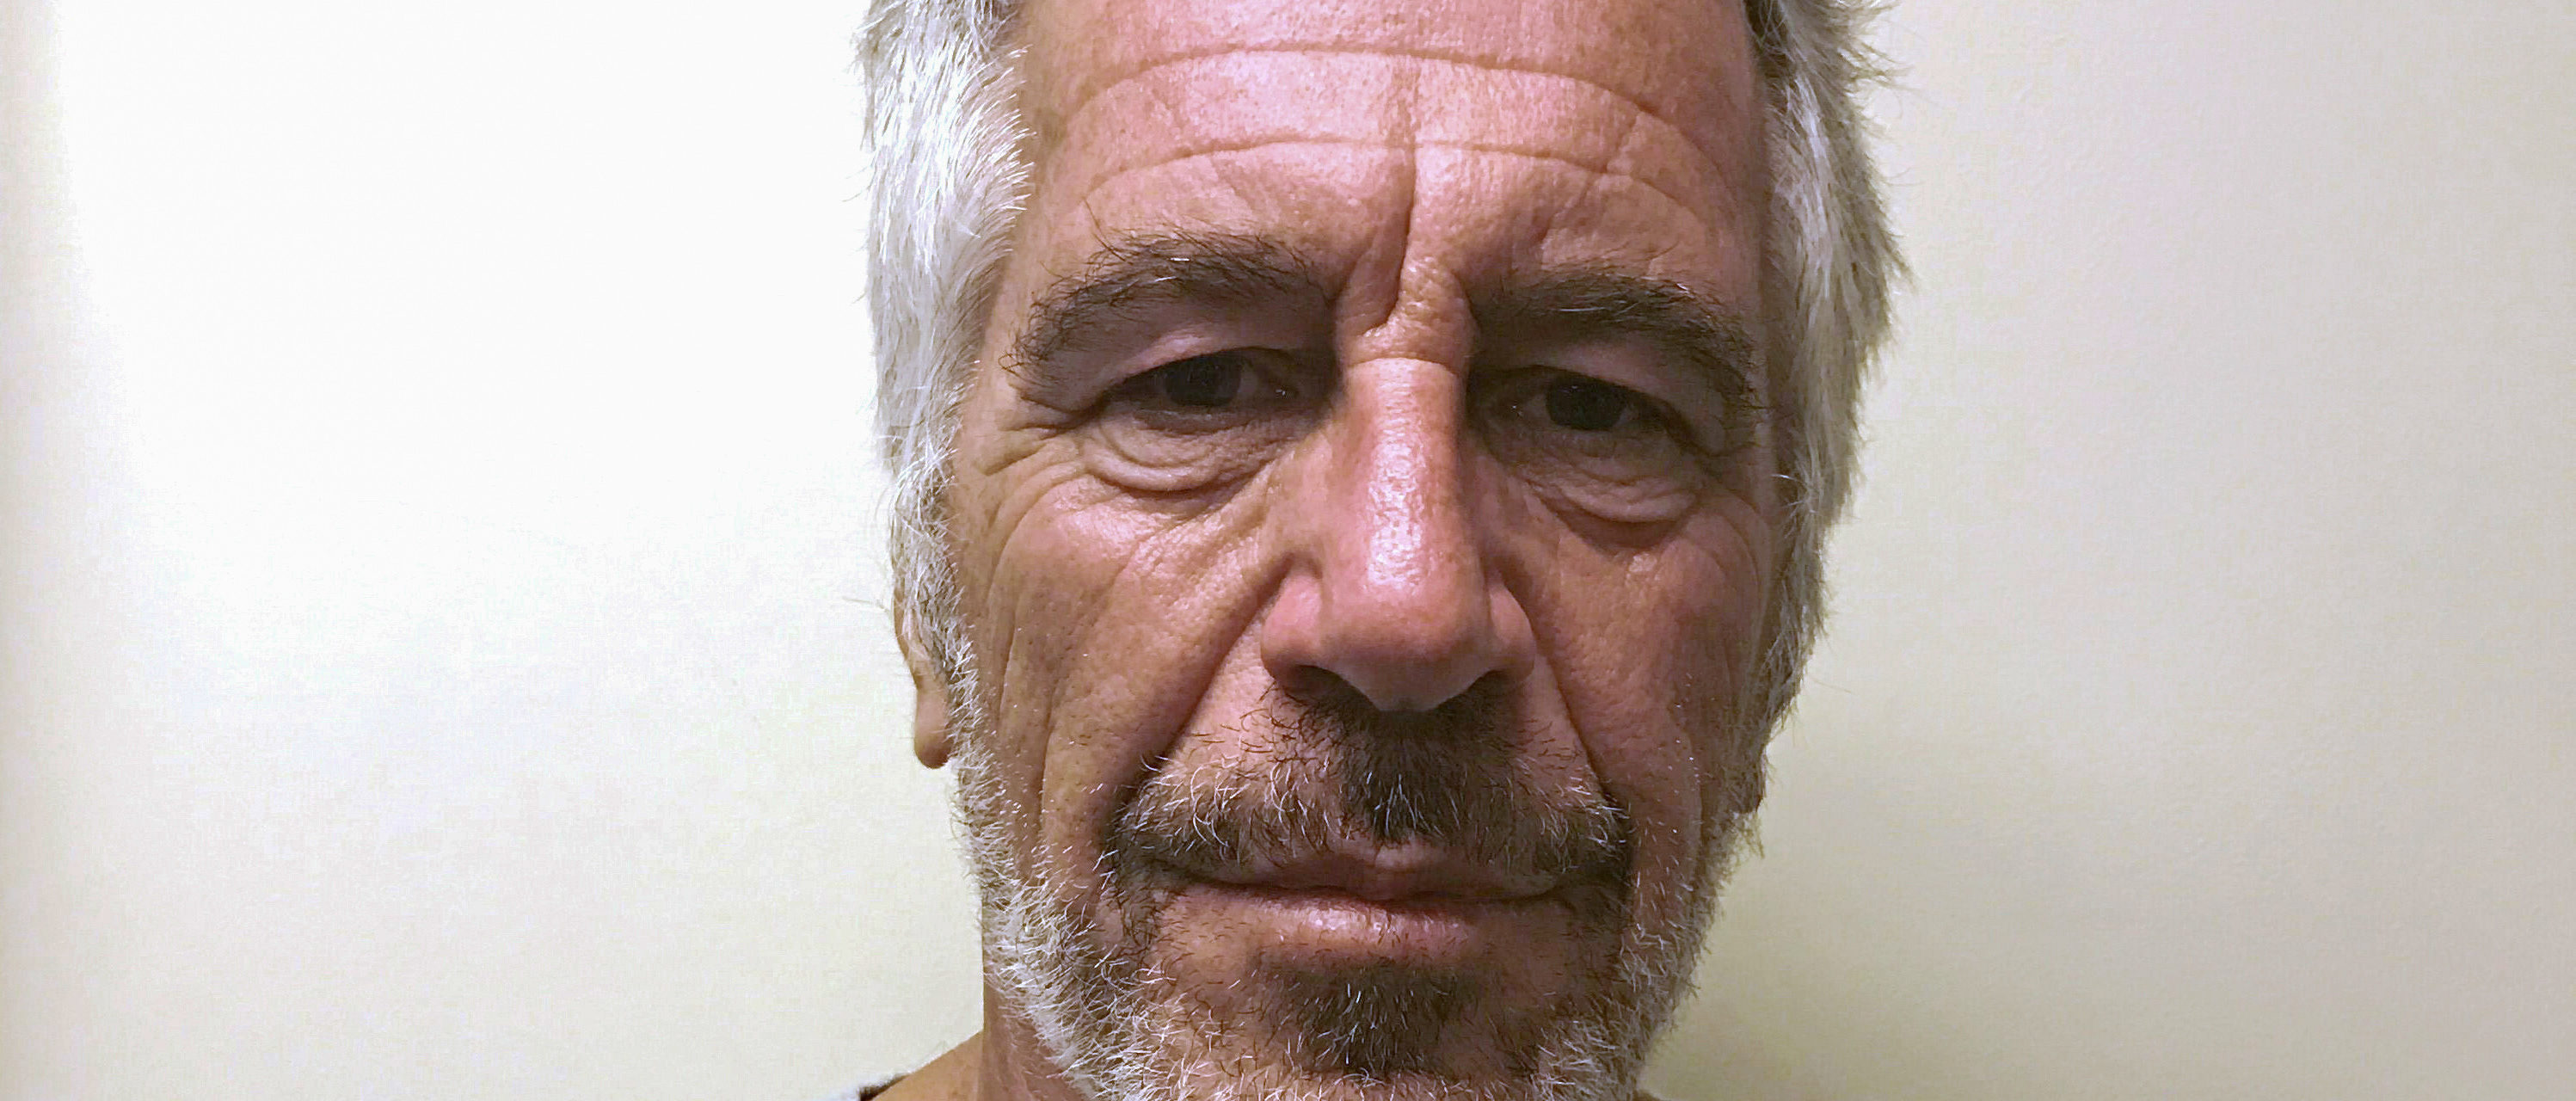 U.S. financier Jeffrey Epstein appears in a photograph taken for the New York State Division of Criminal Justice Services' sex offender registry March 28, 2017. (New York State Division of Criminal Justice Services/Handout via REUTERS.)